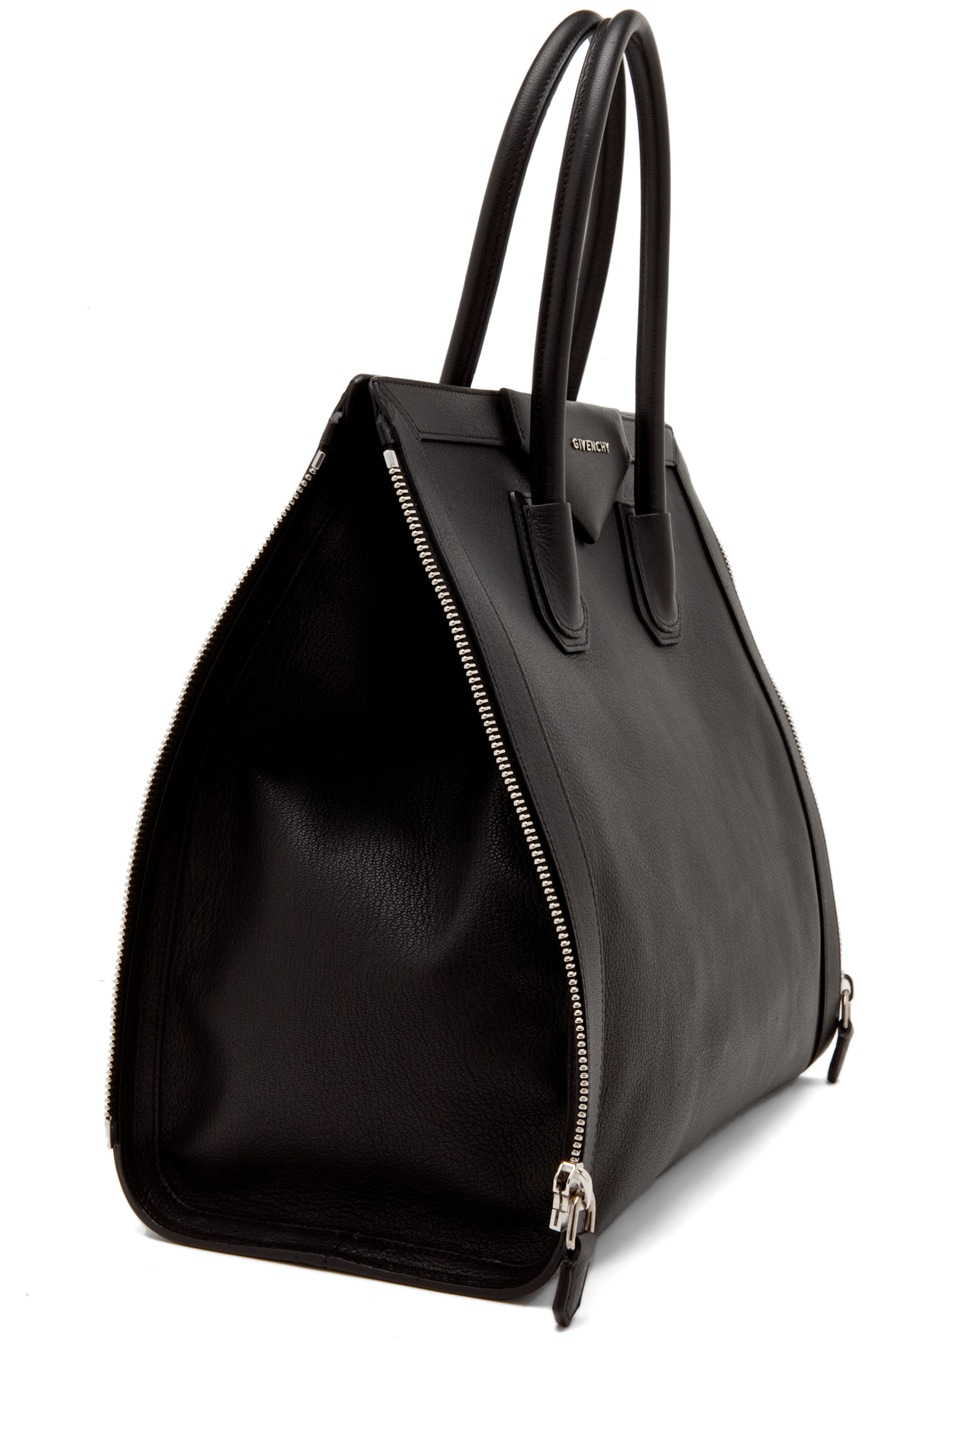 42bbdba1b03f Image 3 of Givenchy Antigona Tote with Zippers in Black